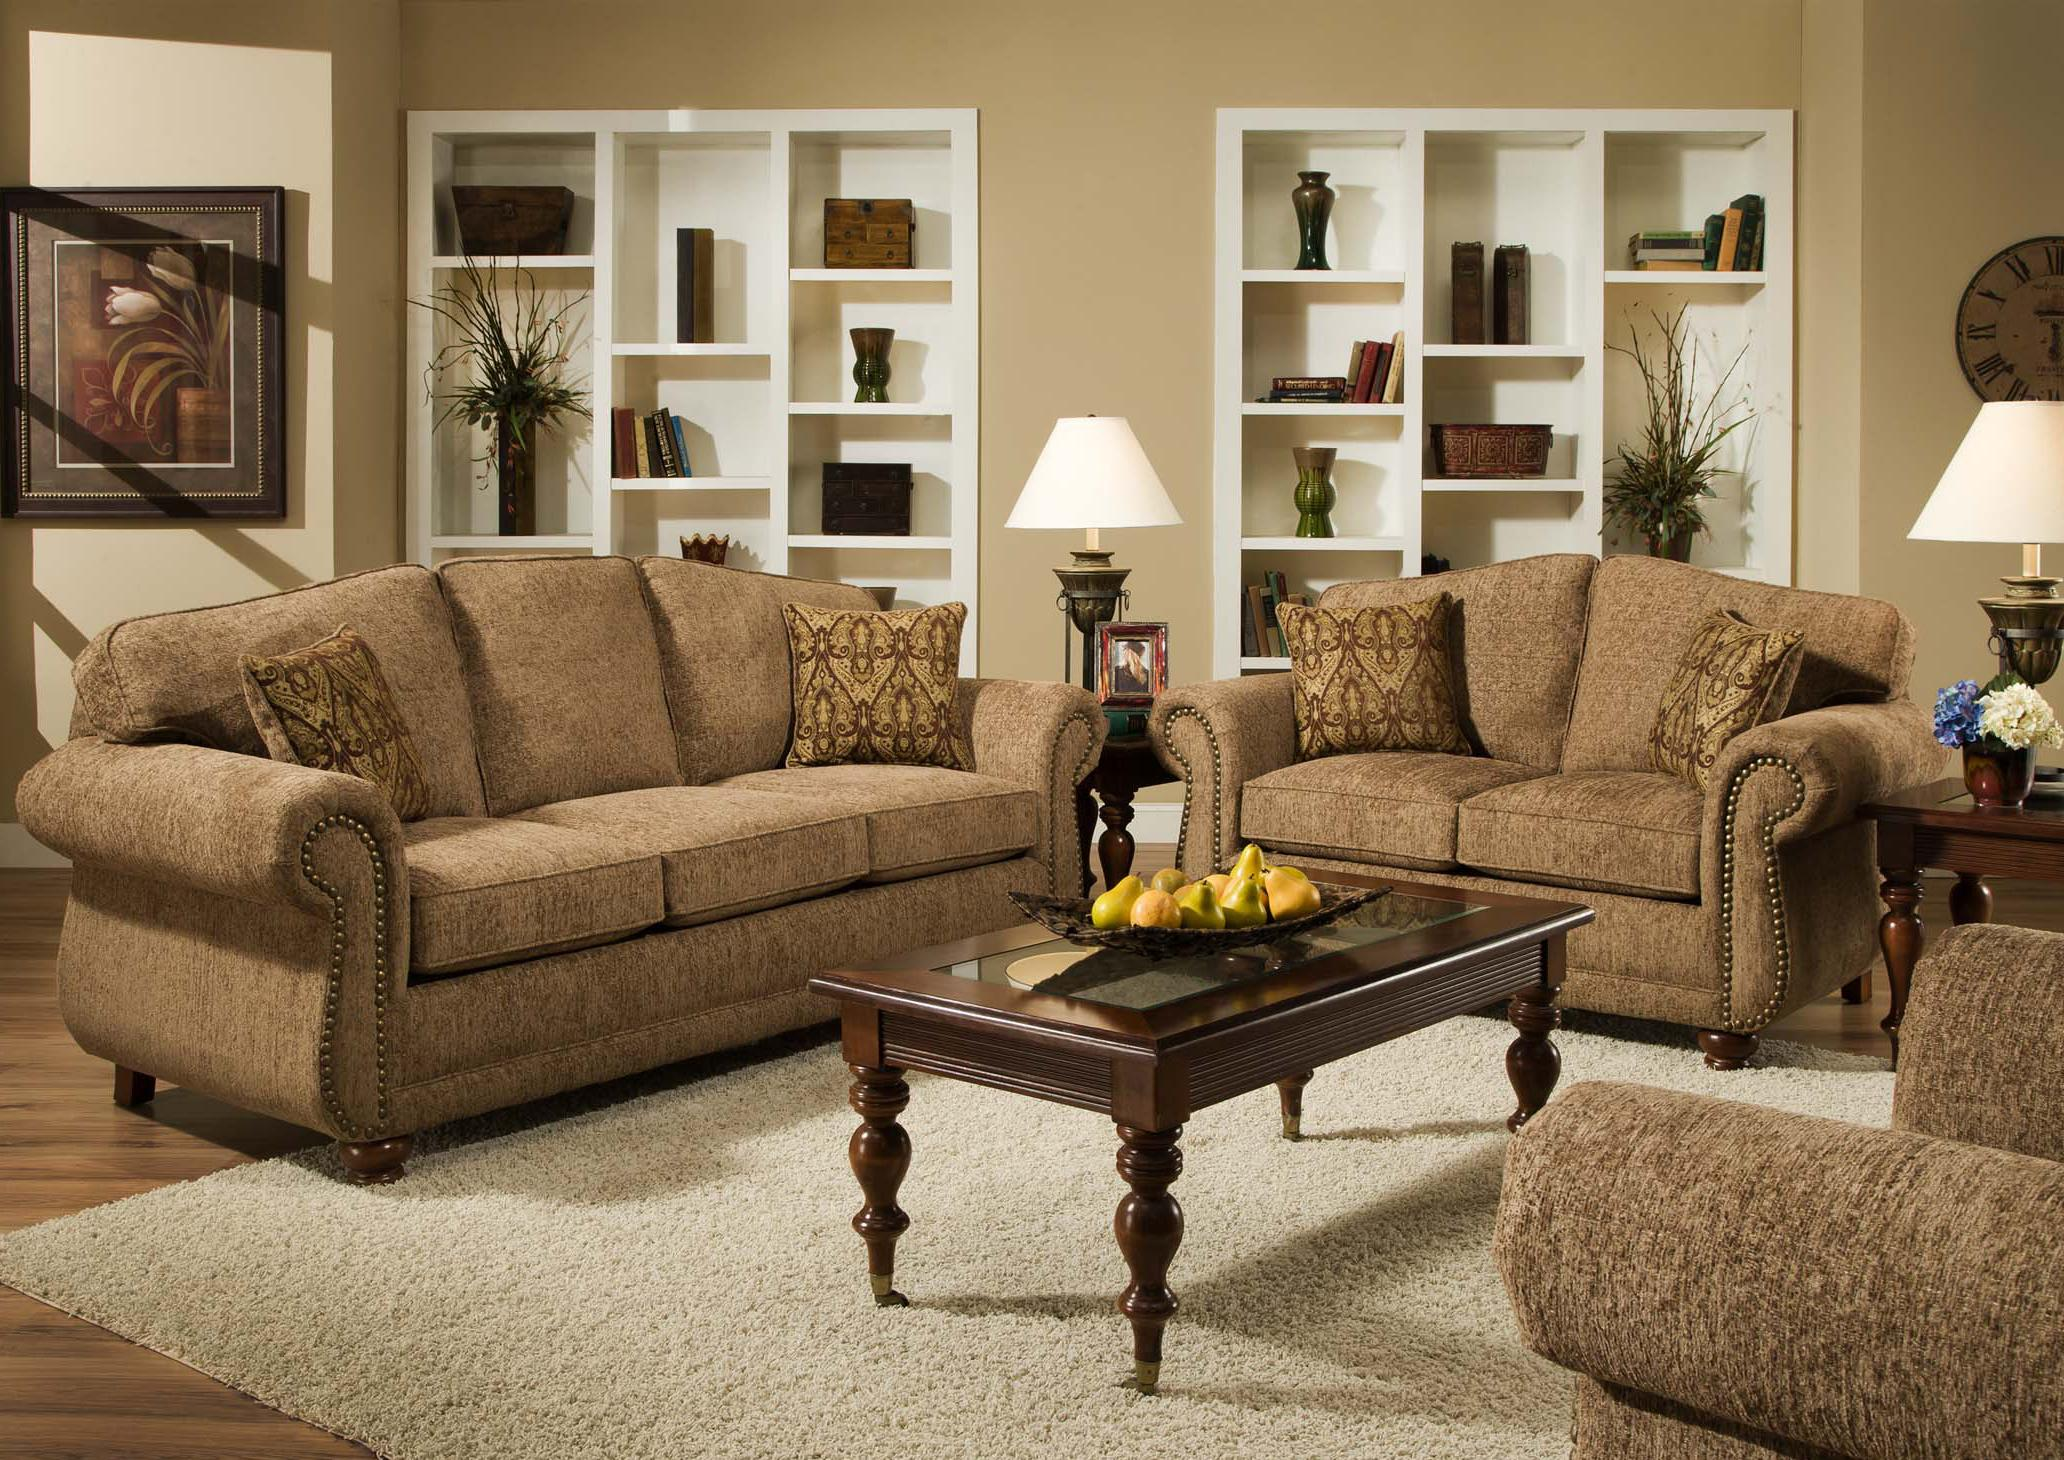 American Furniture 6000 Stationary Living Room Group Vandrie Home Furnishings Stationary